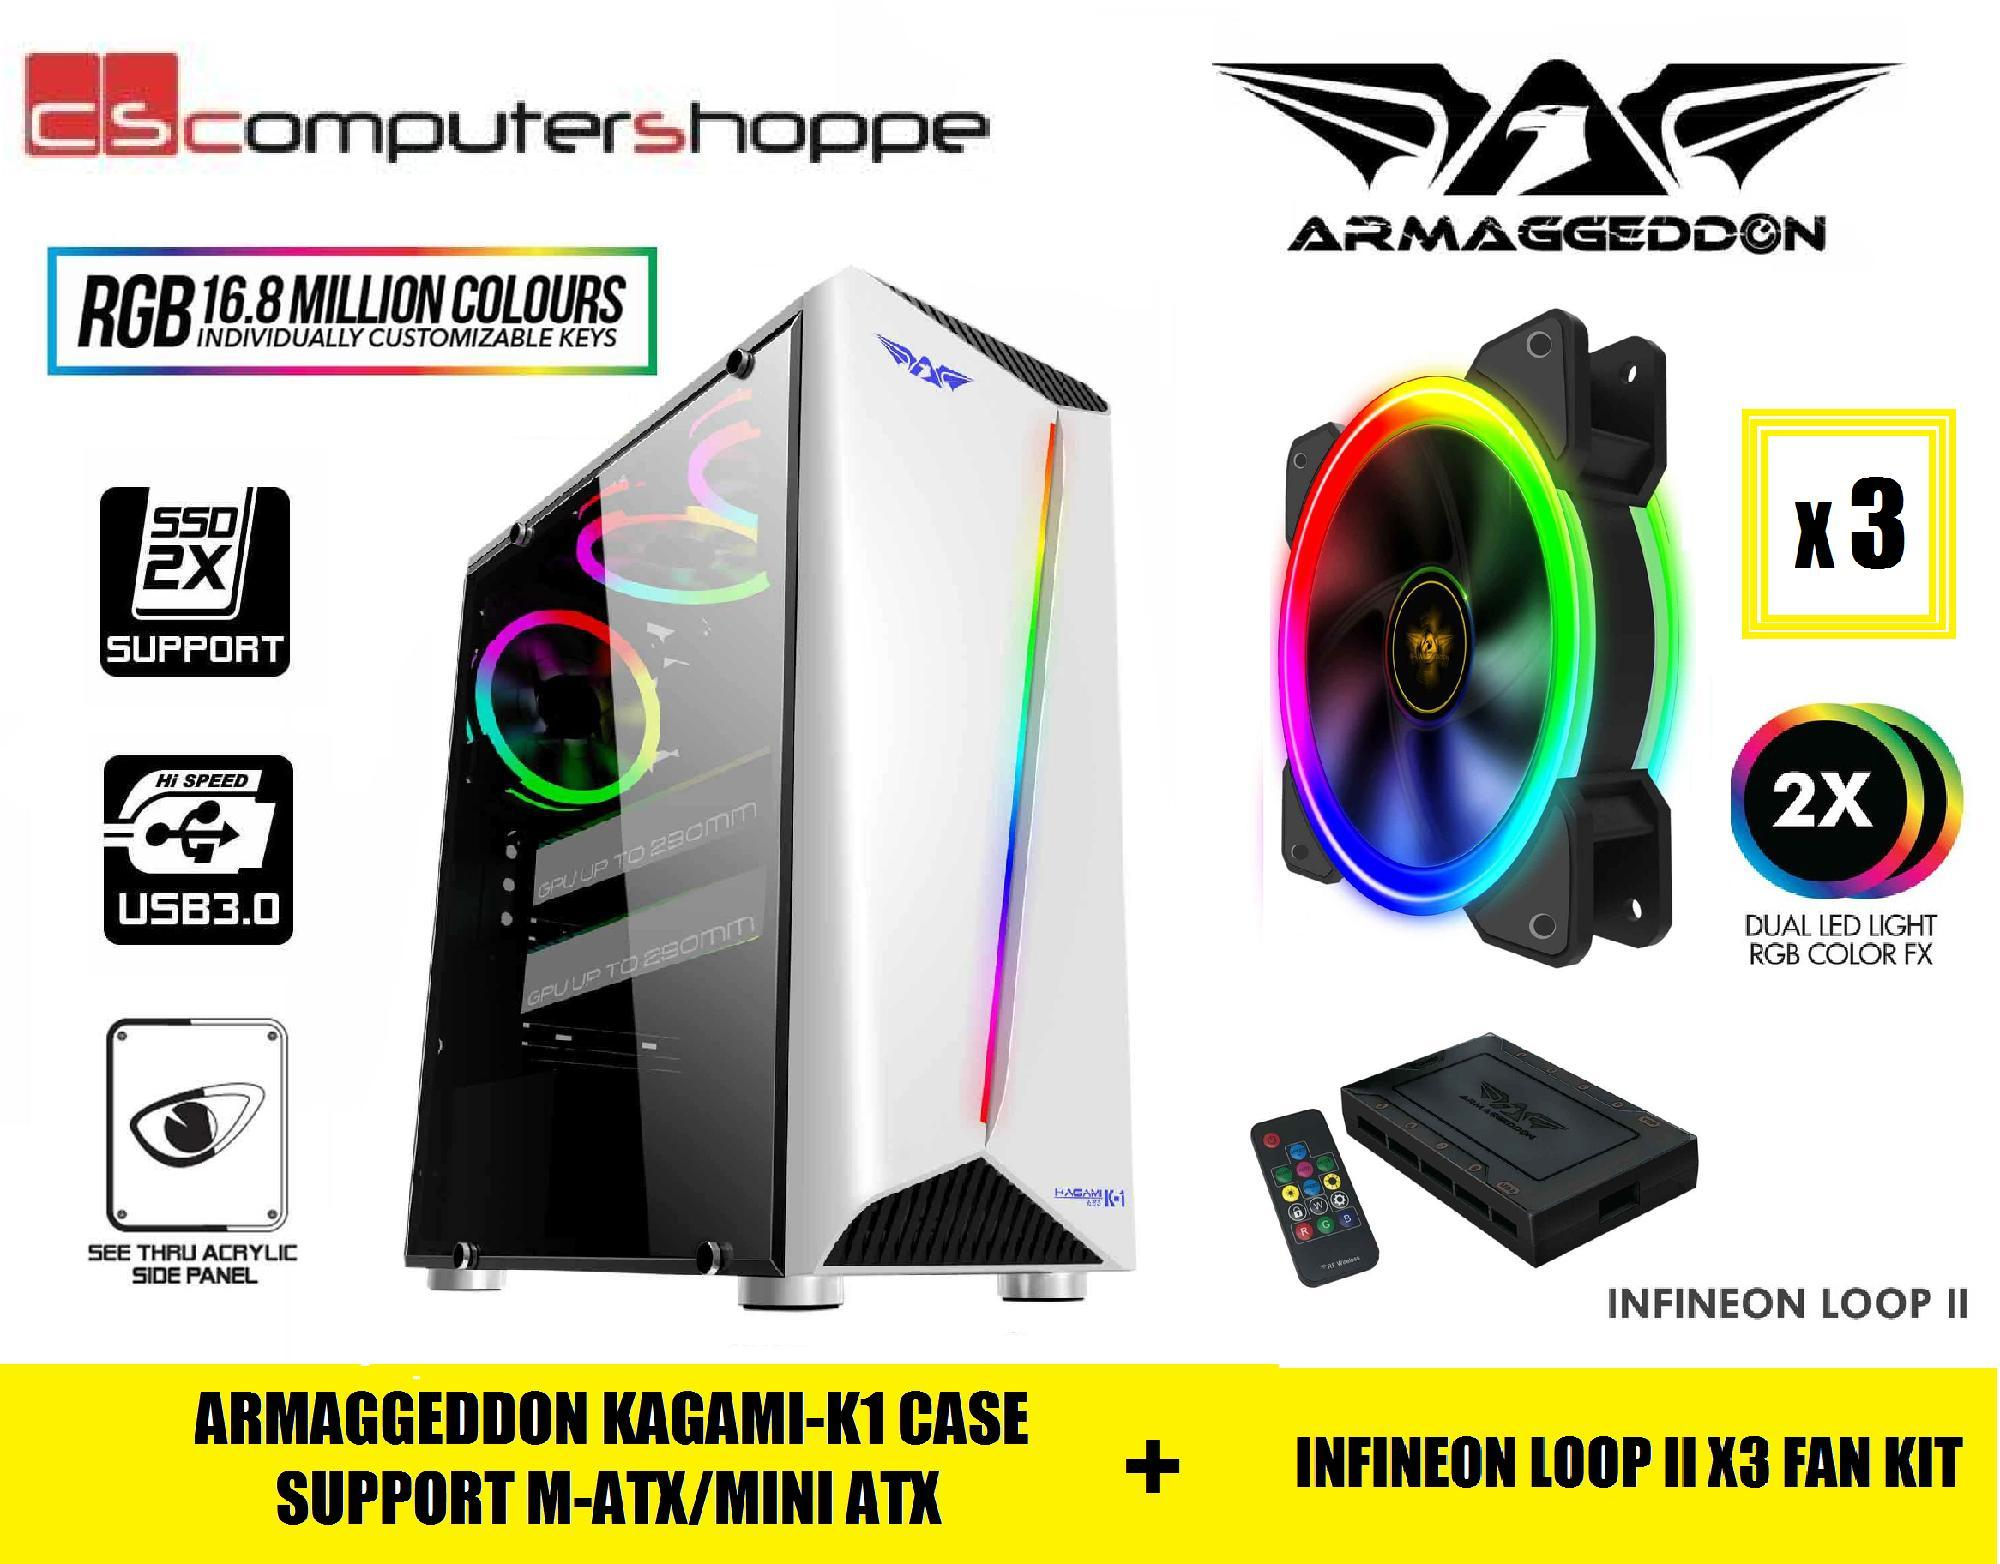 New Pc Komputer Cube Gaming Ryzen 5 2400g B320m Pro Vega 8 Ram Ddr4 8gb By Liemos Shop.